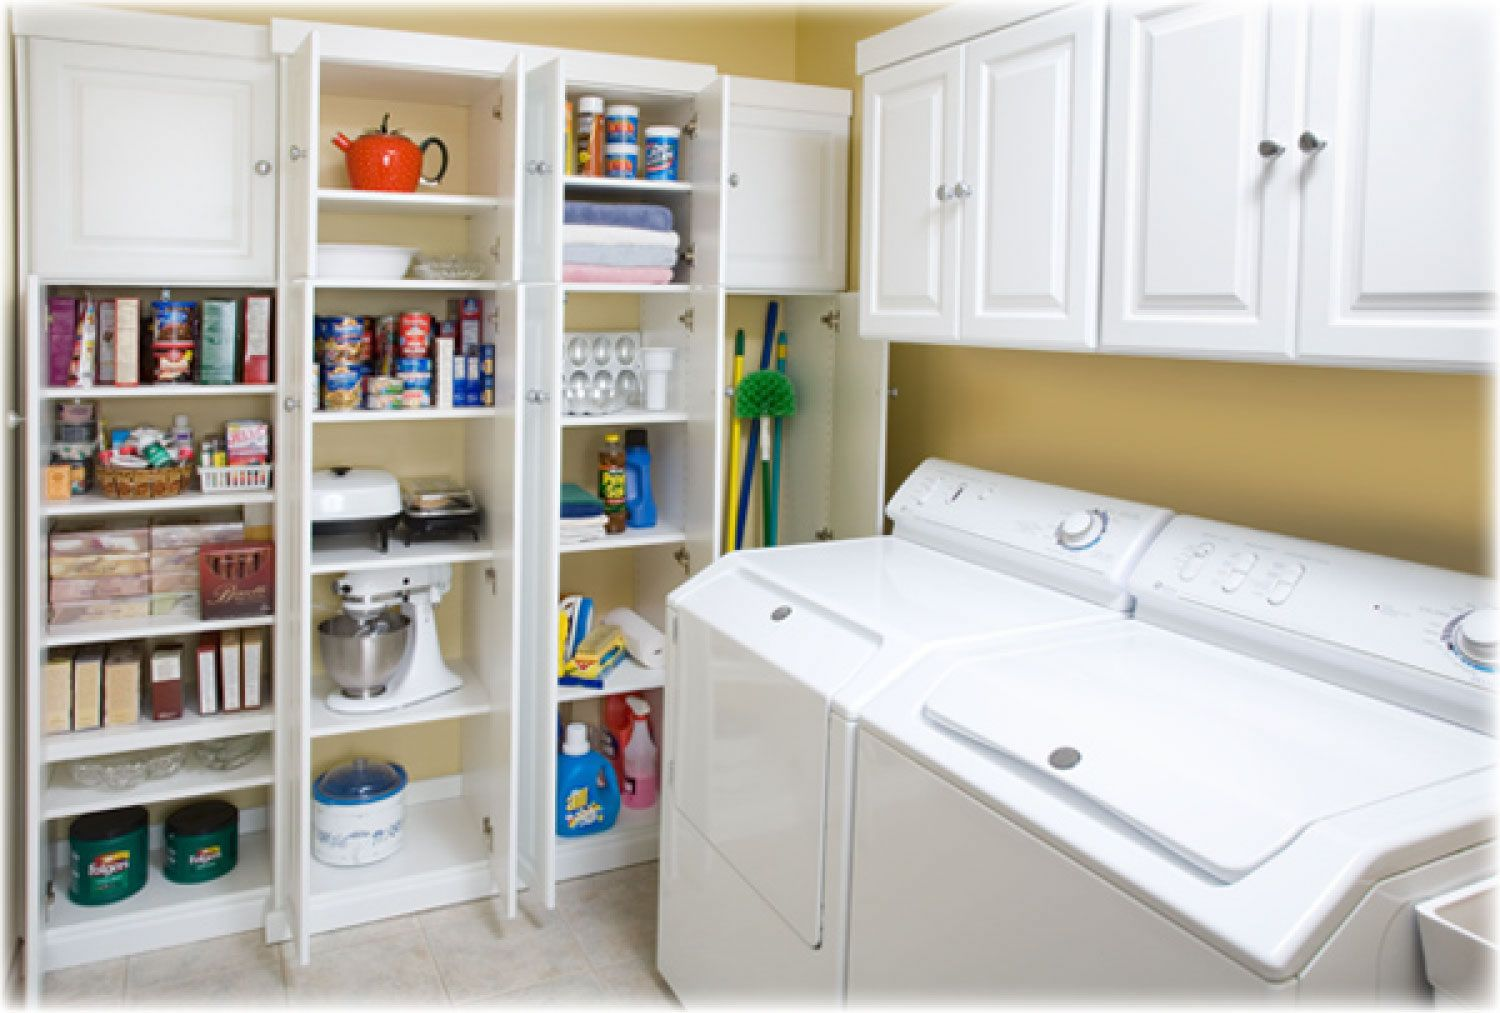 Pin By Fay Gainey On Organization Ideas Laundry Room Storage Solutions Pantry Room Laundry Room Storage